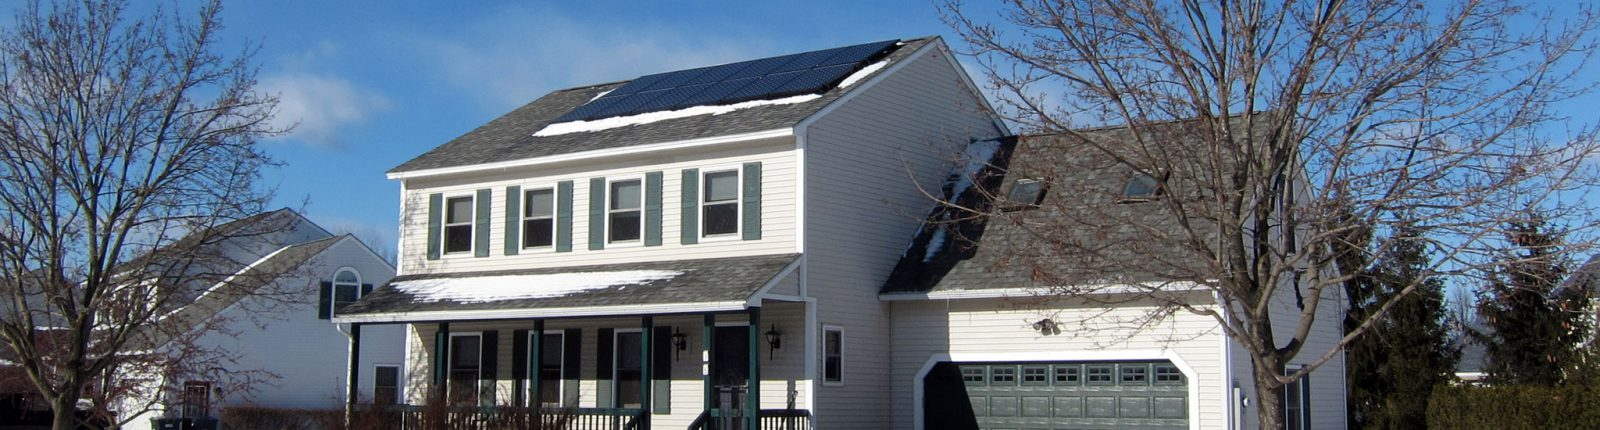 Solar Investment Tax Credit – What does it mean for me?